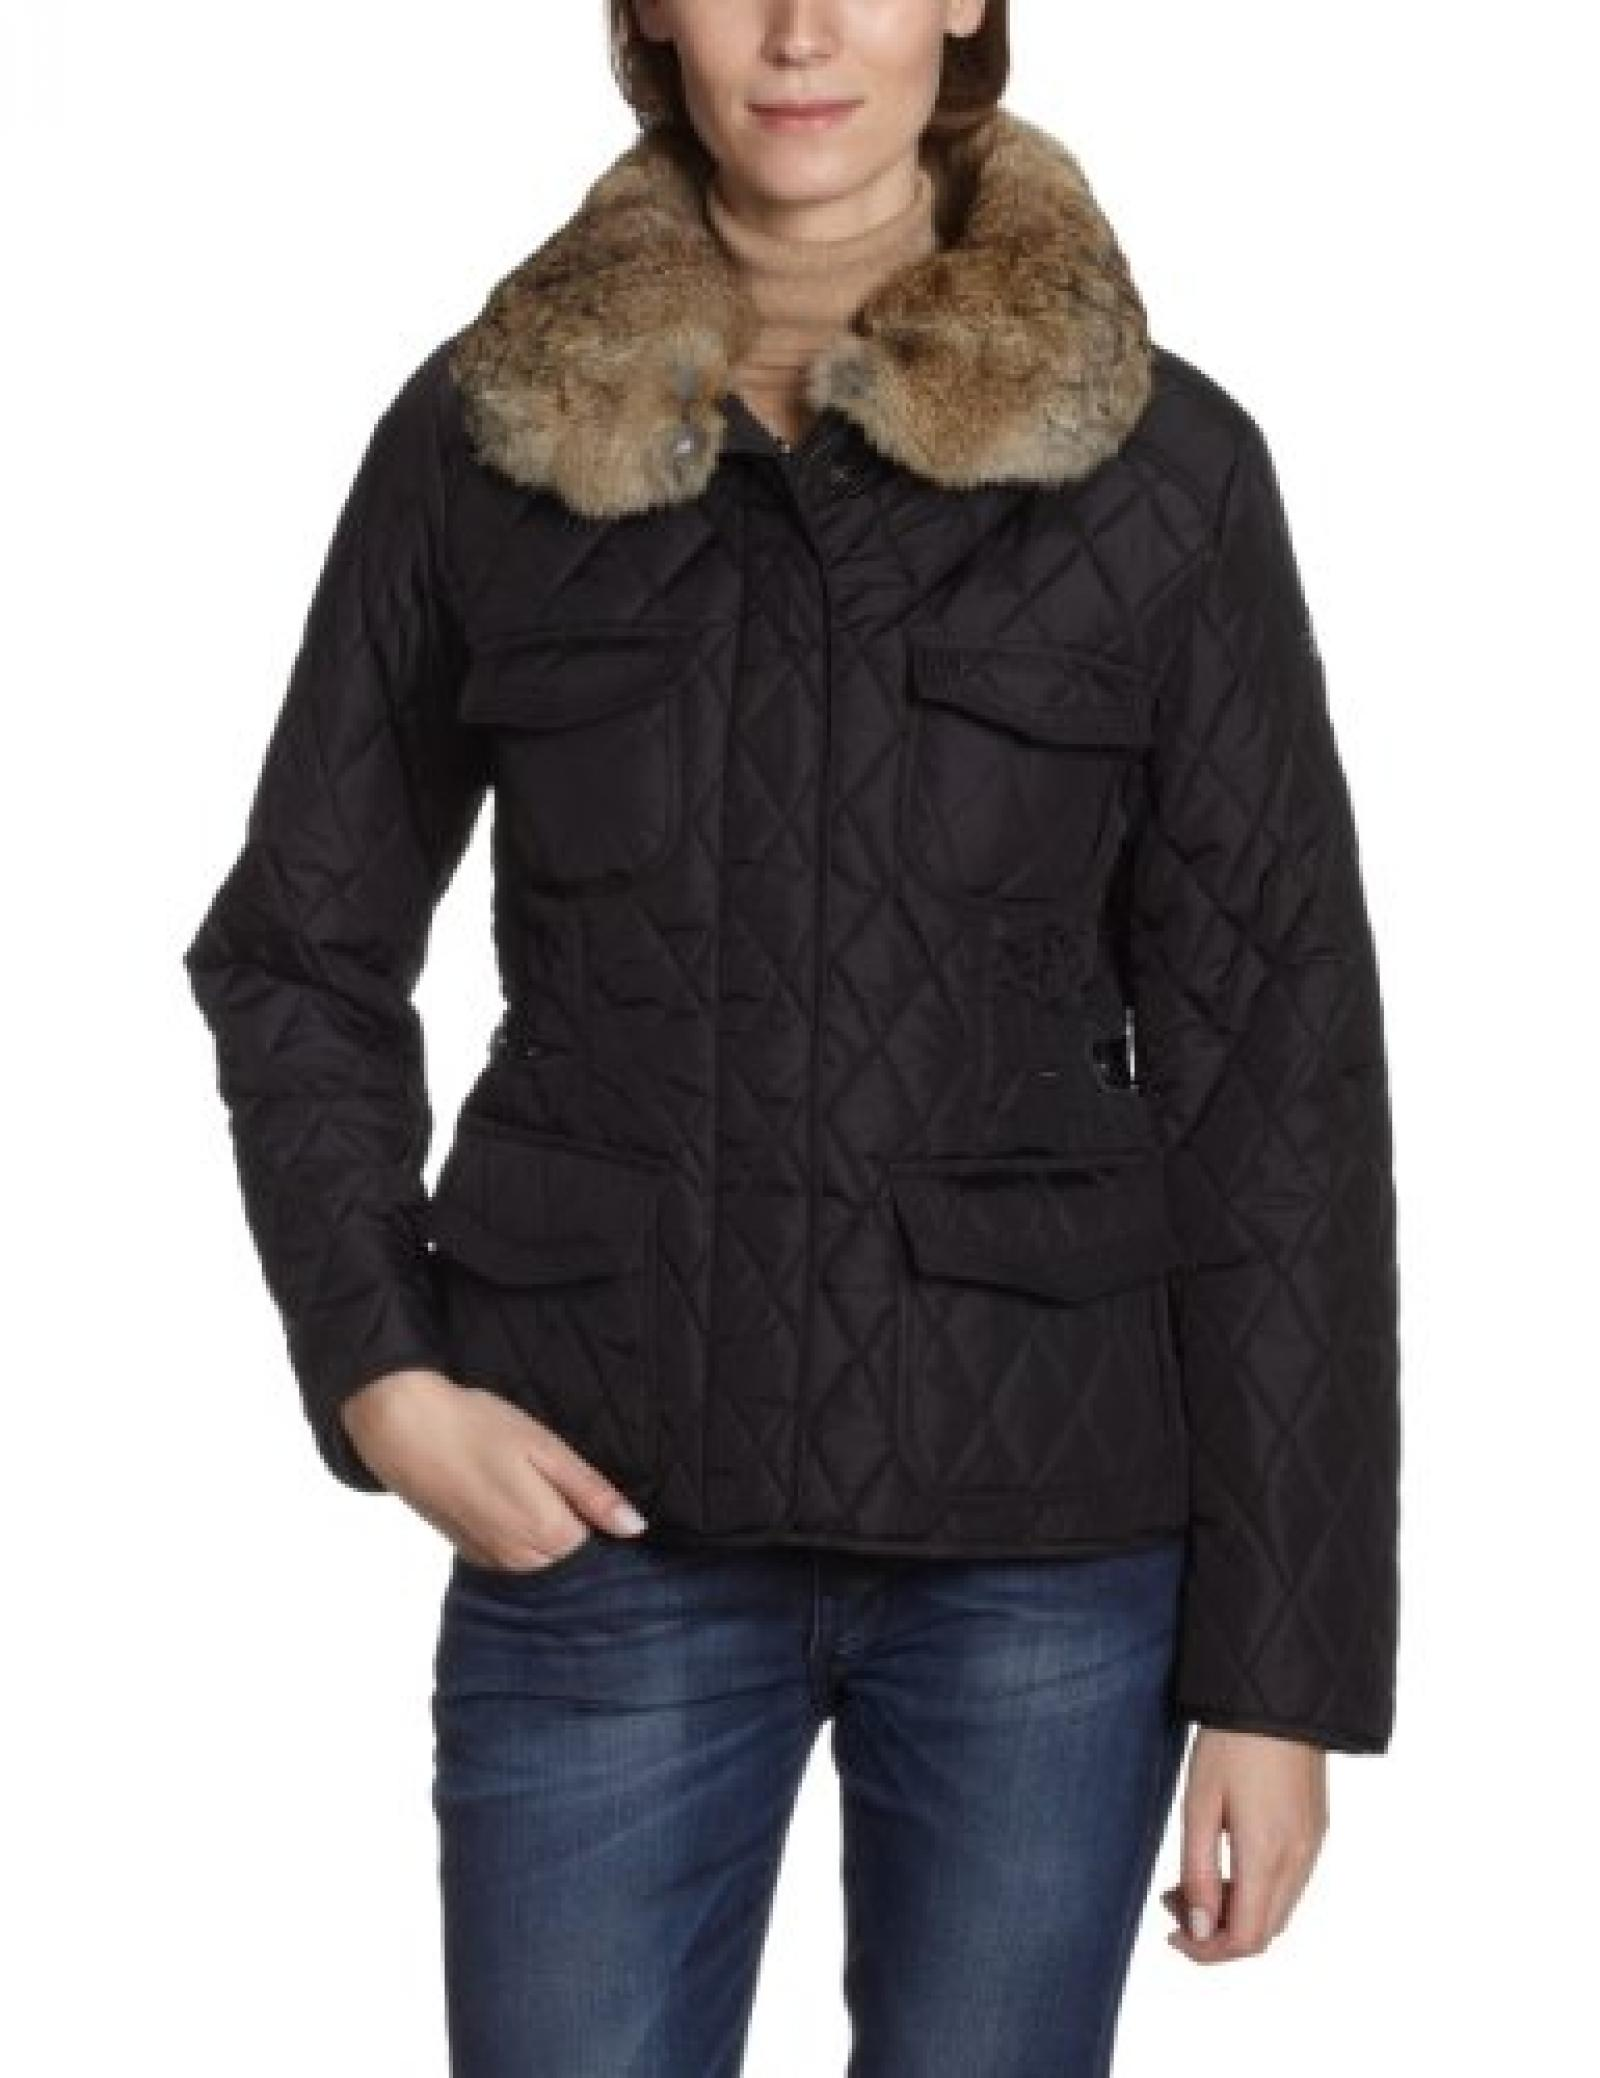 Marina Yachting Damen Steppjacke 120284625910